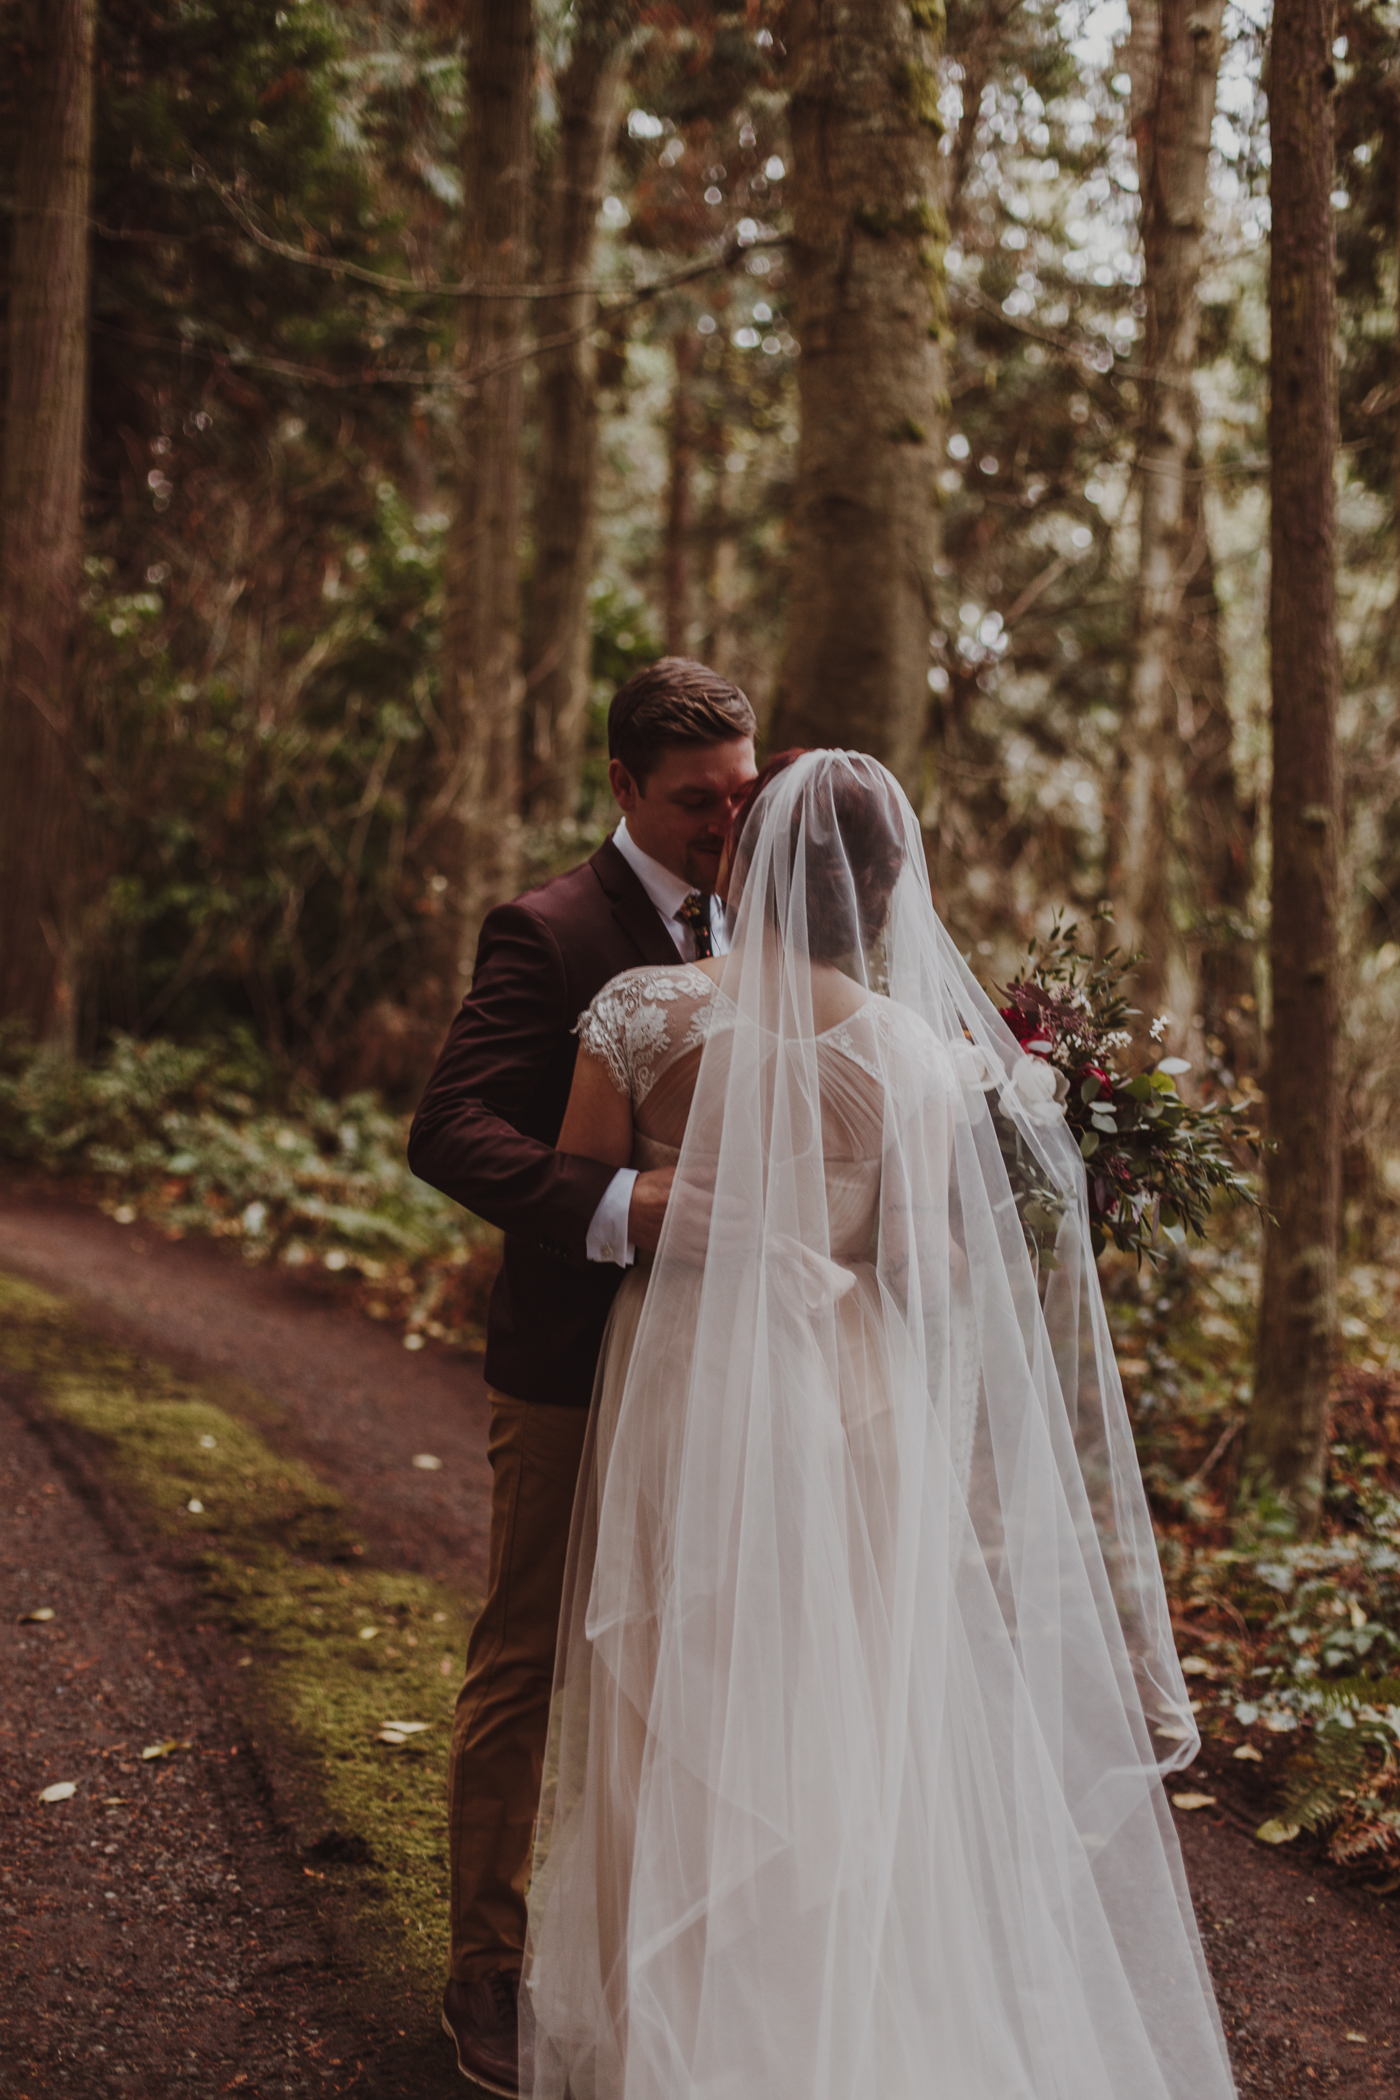 Olympic Peninsula Elopement-LizMorrow-32.jpg